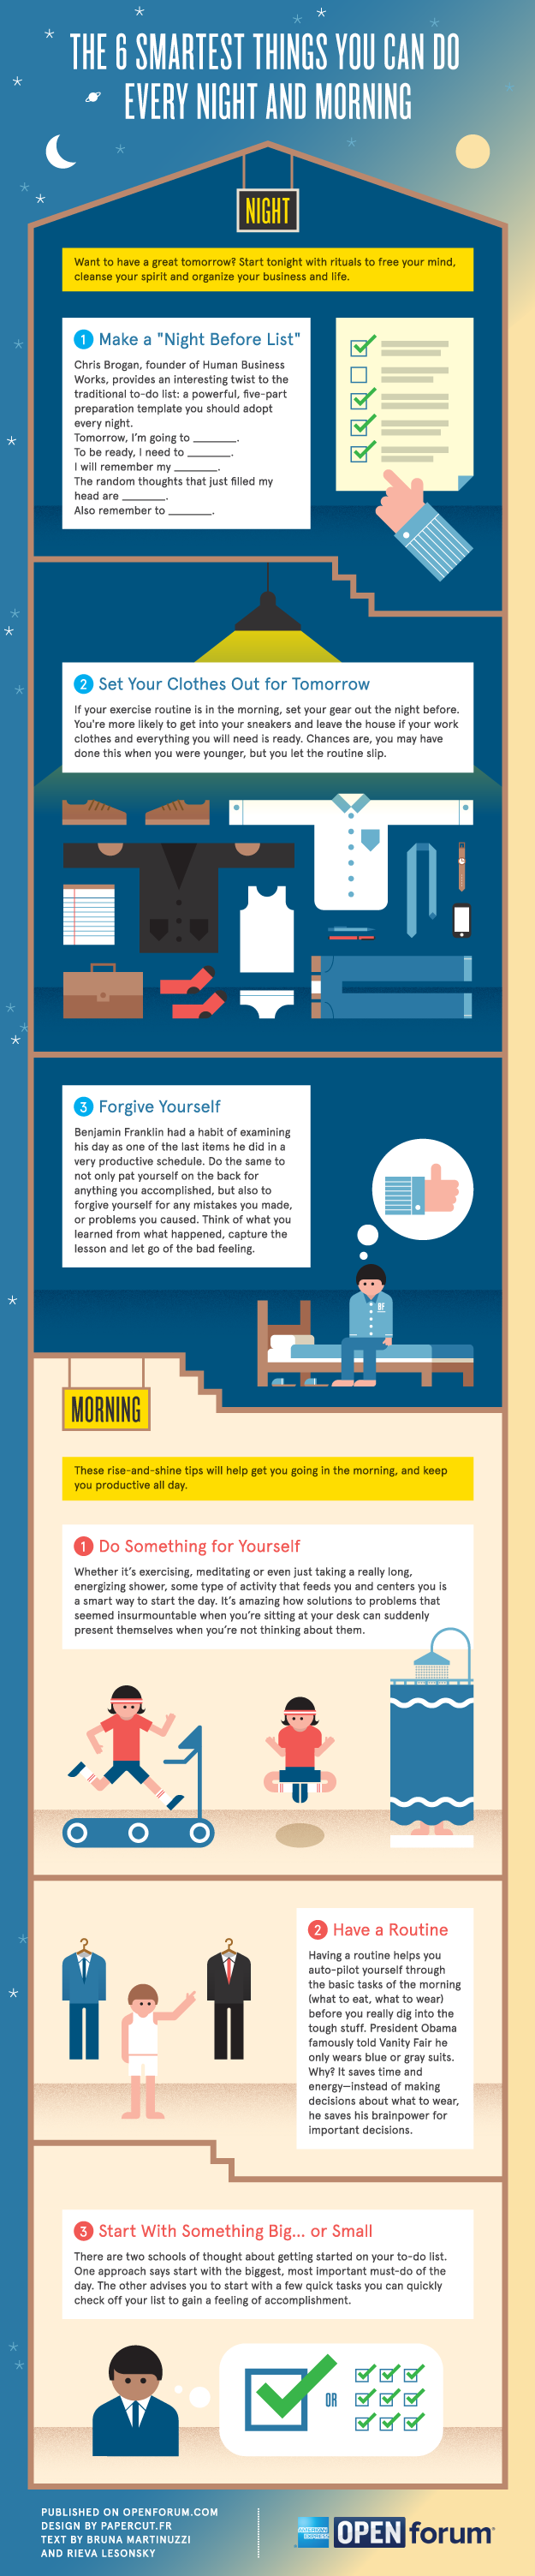 The thing smartest things you can do every night and every morning infographic